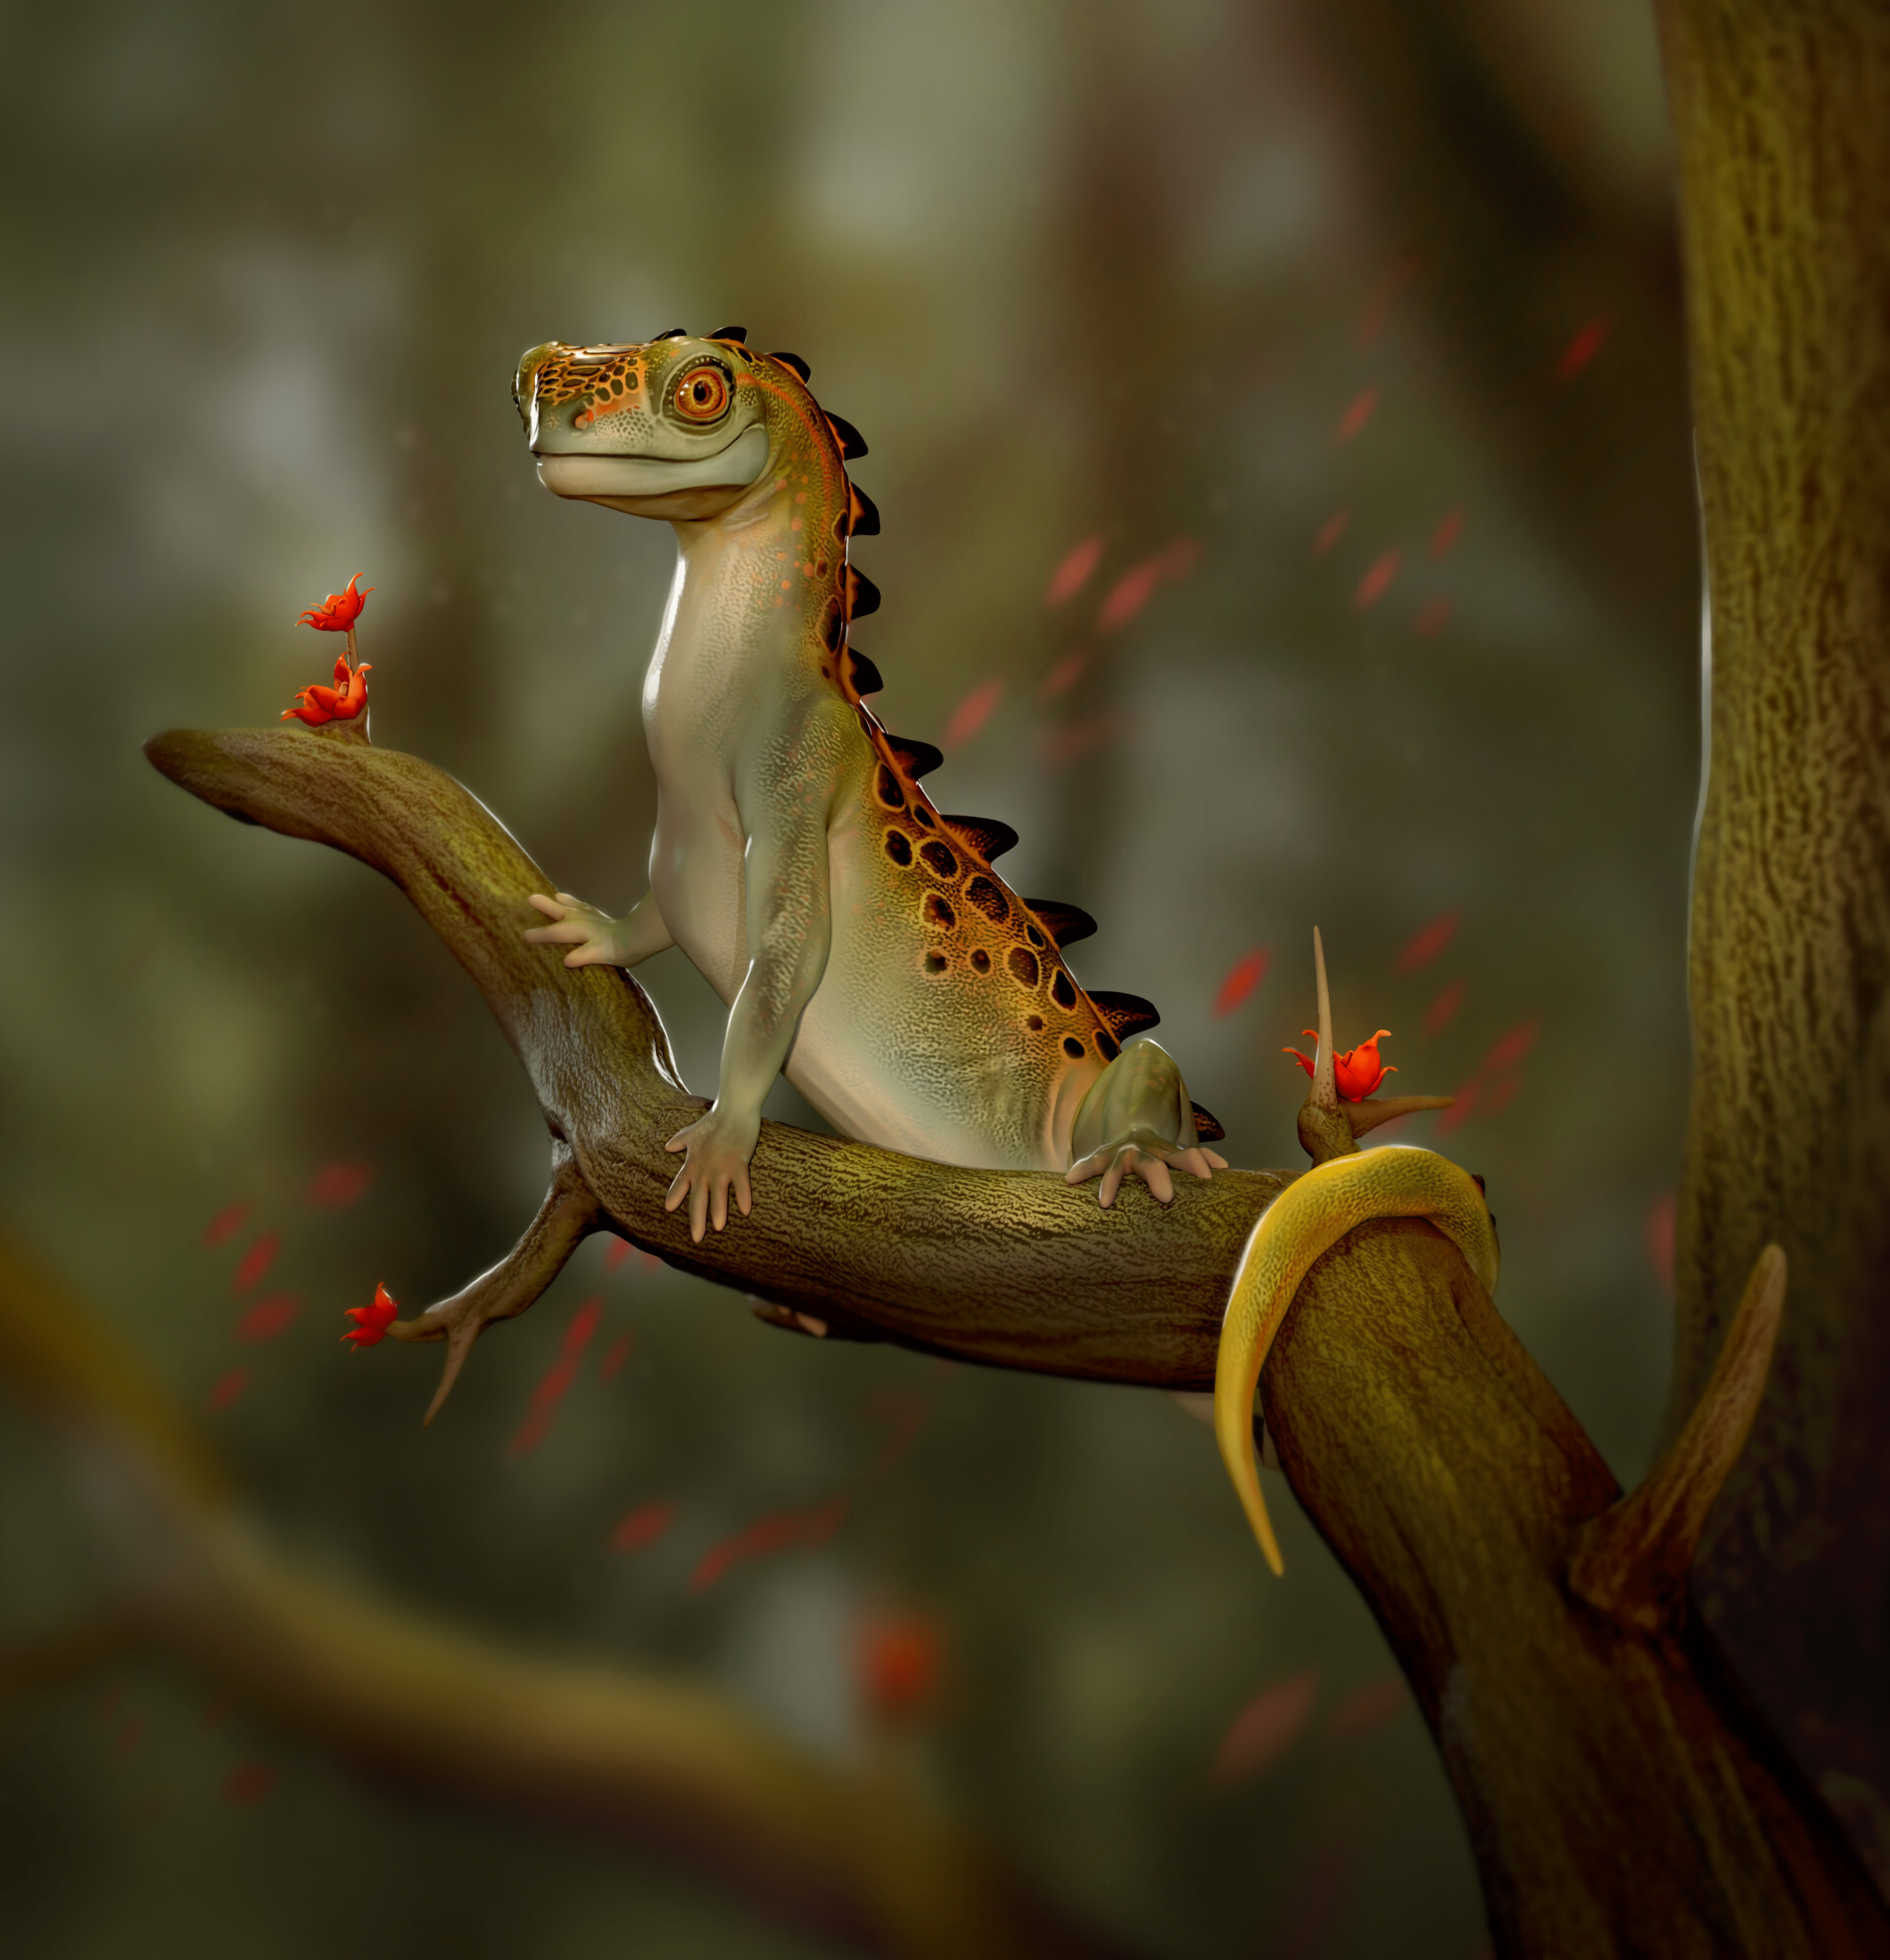 68163 download wallpaper Funny, Art, Lizard, Reptile screensavers and pictures for free